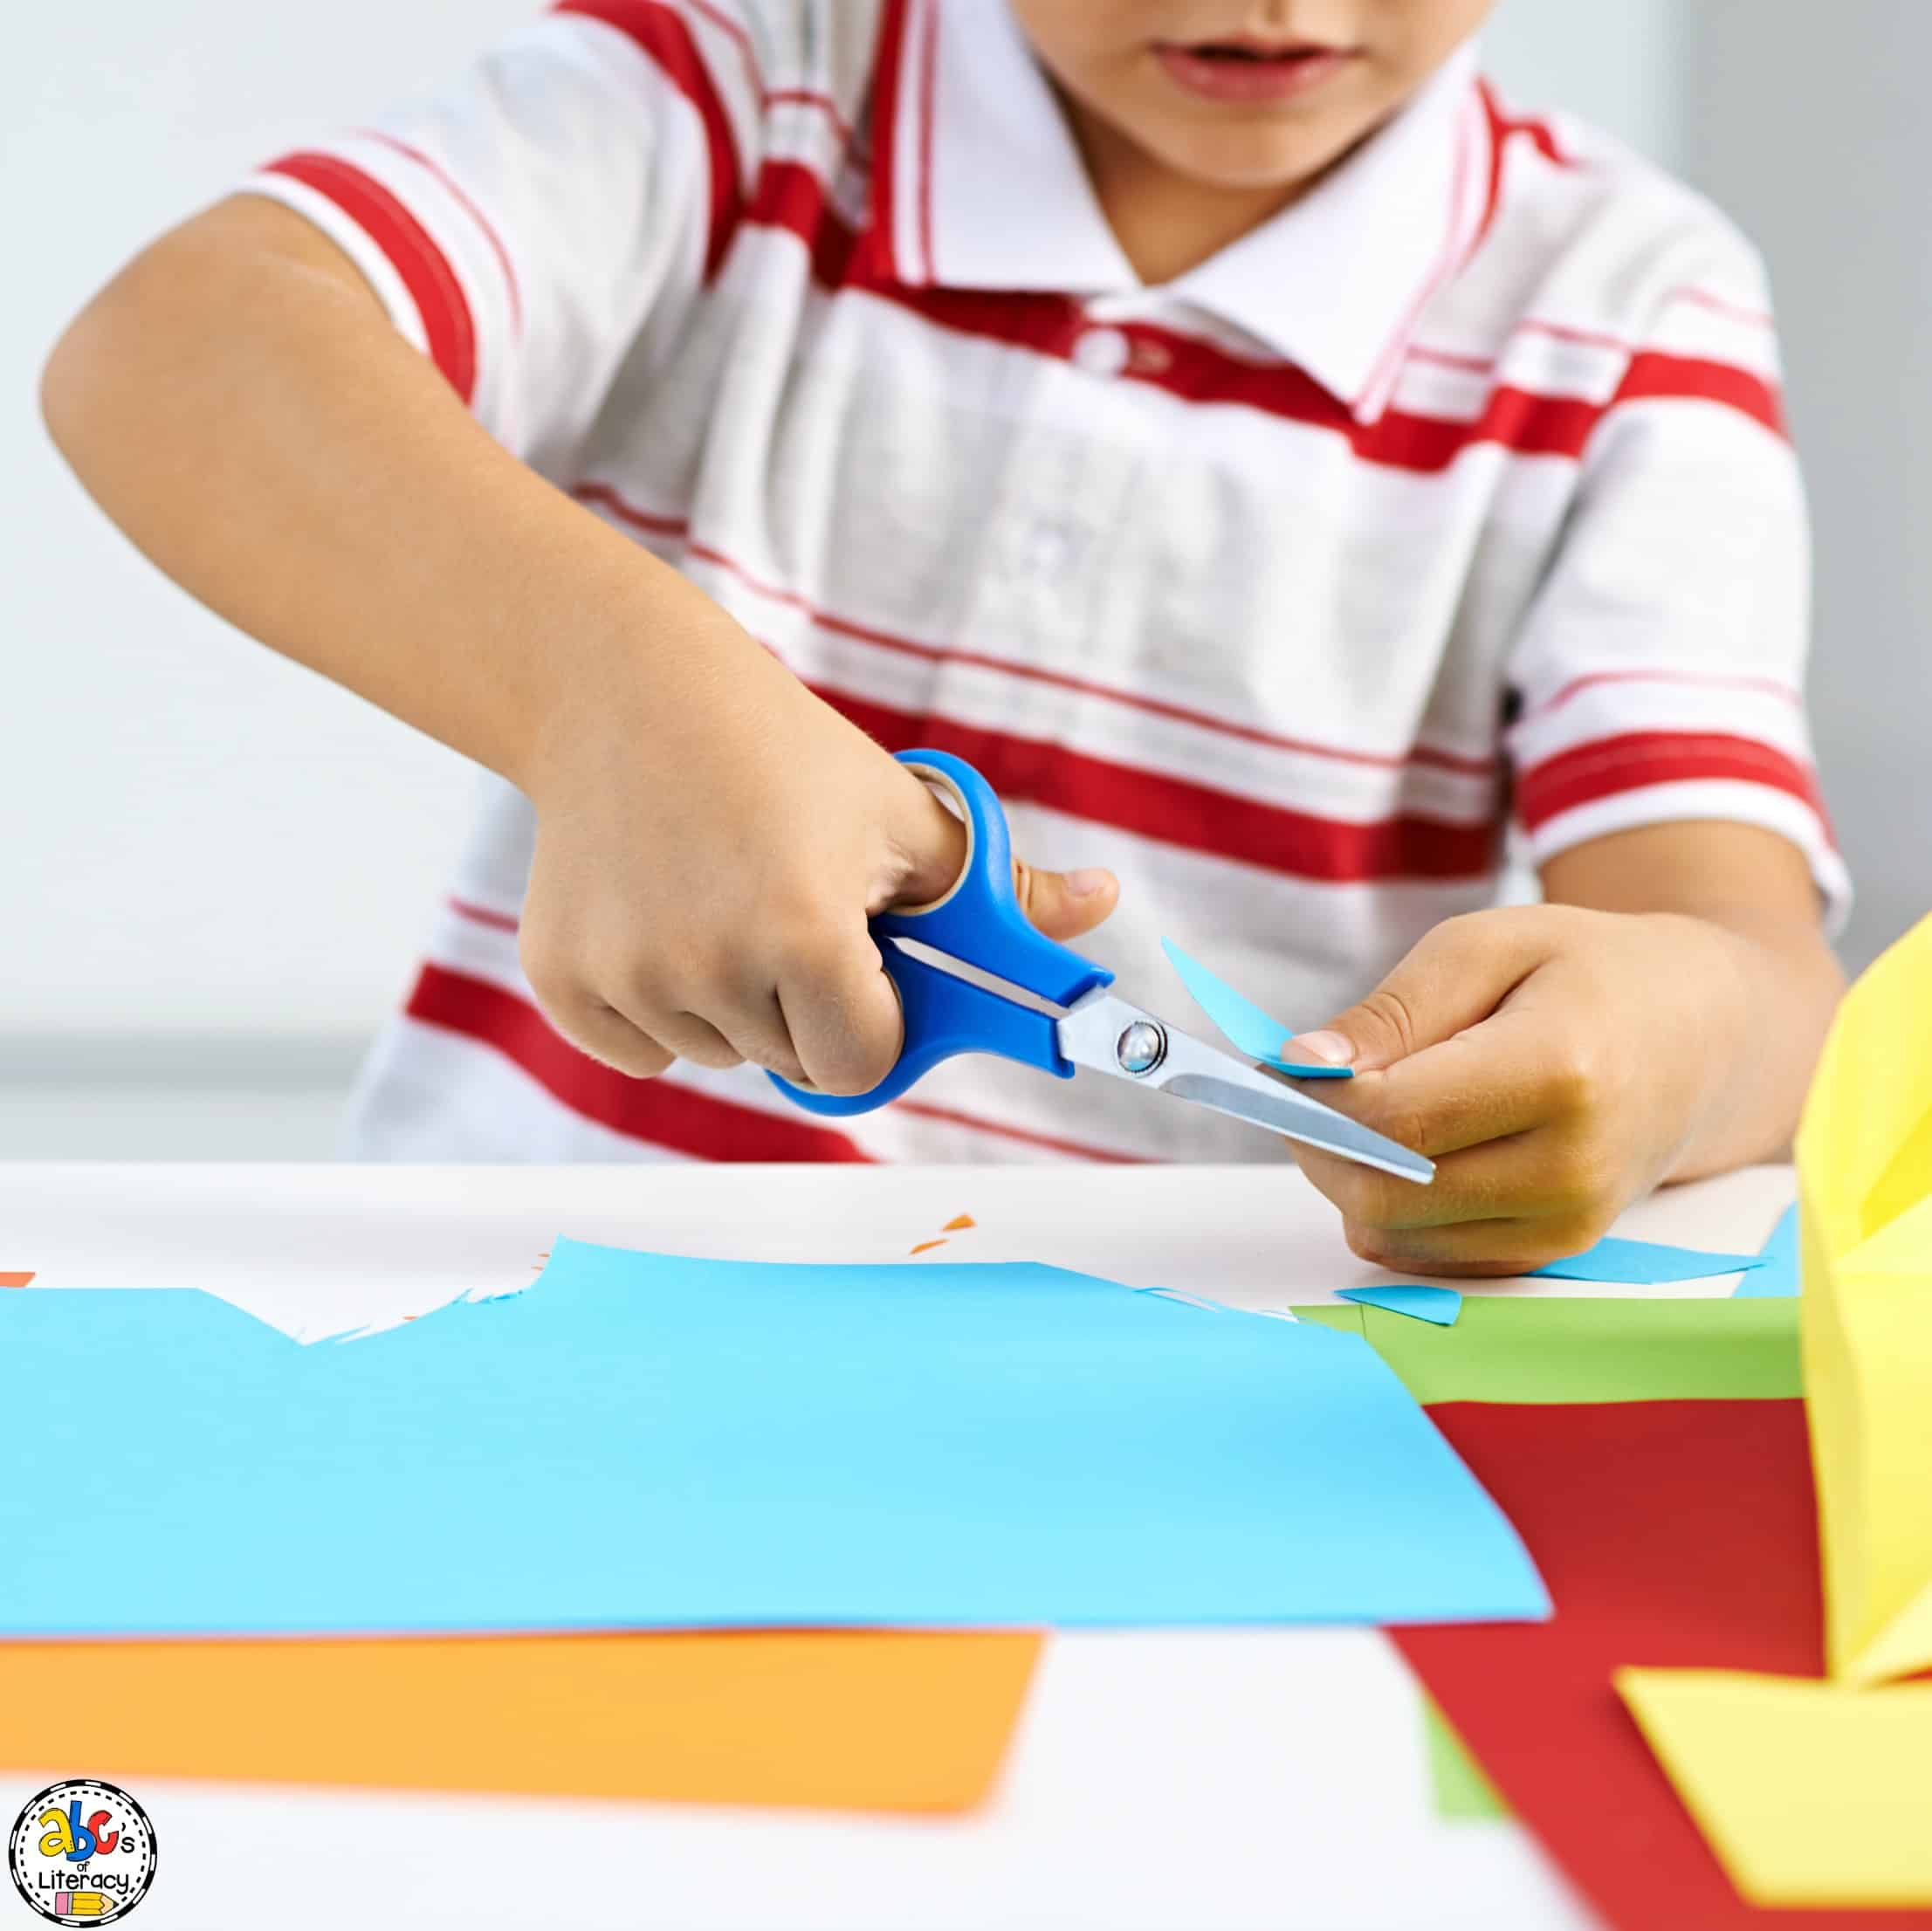 Creating Crafts Is Great For Fine Motor Skills